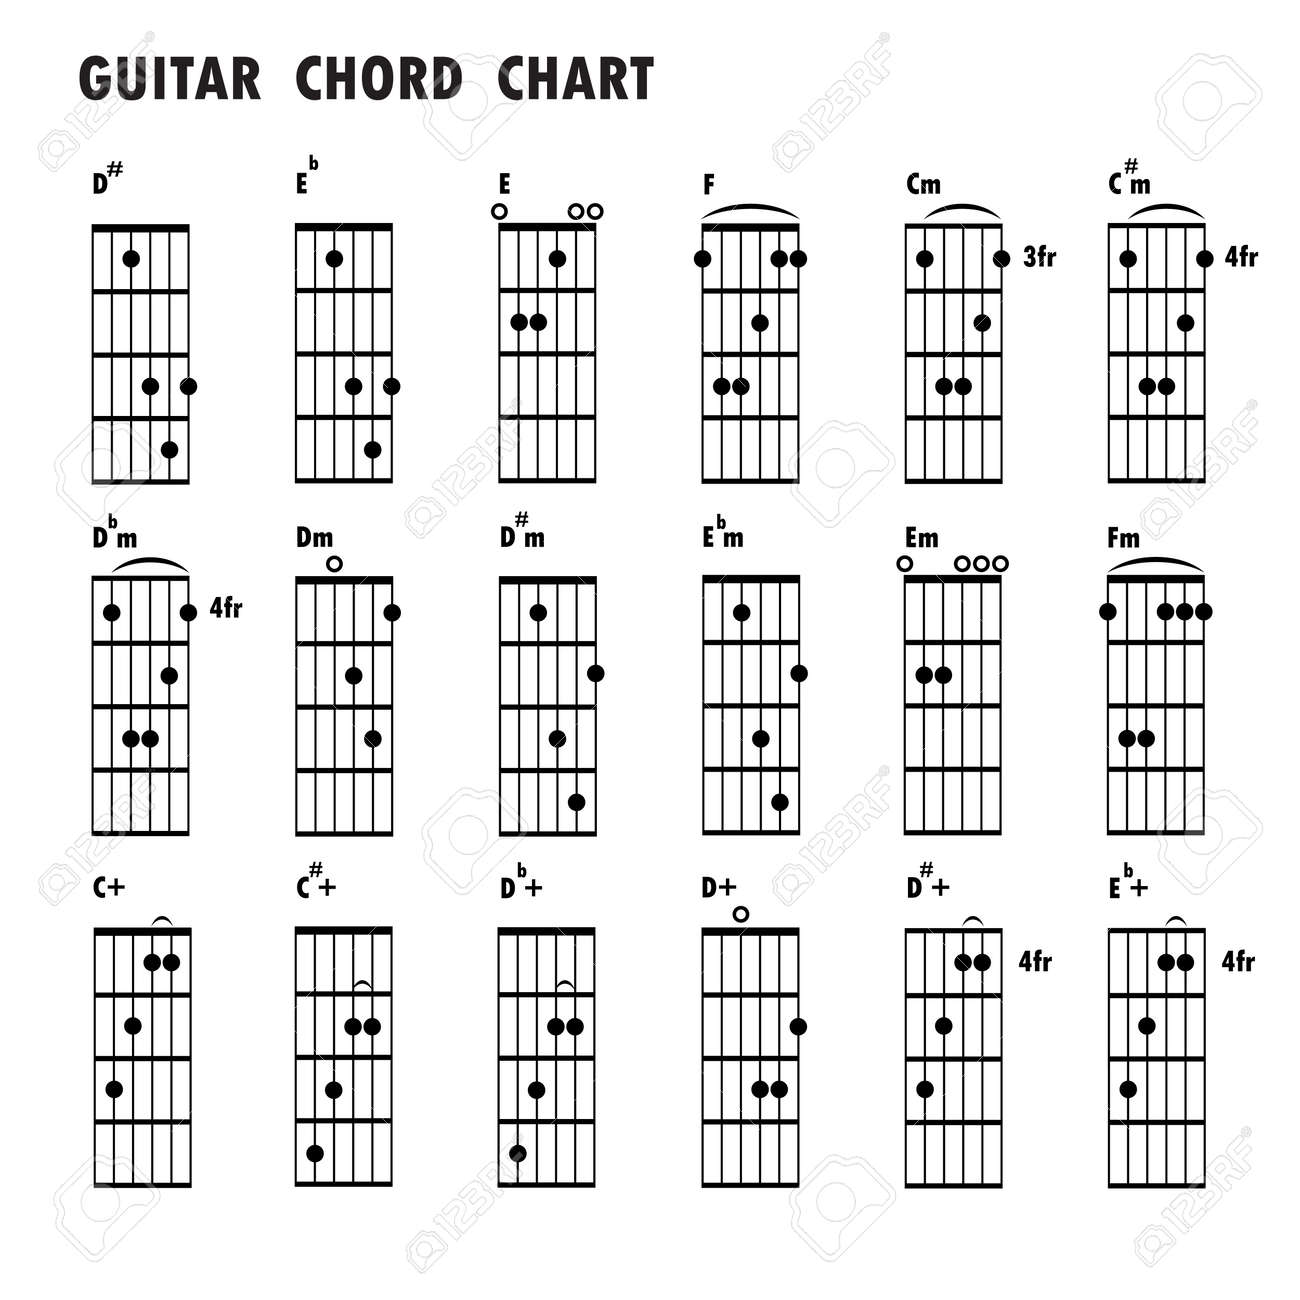 Em guitar chords gallery guitar chords examples the a team guitar chords images guitar chords examples set of music notes abstract musical background hexwebz Image collections